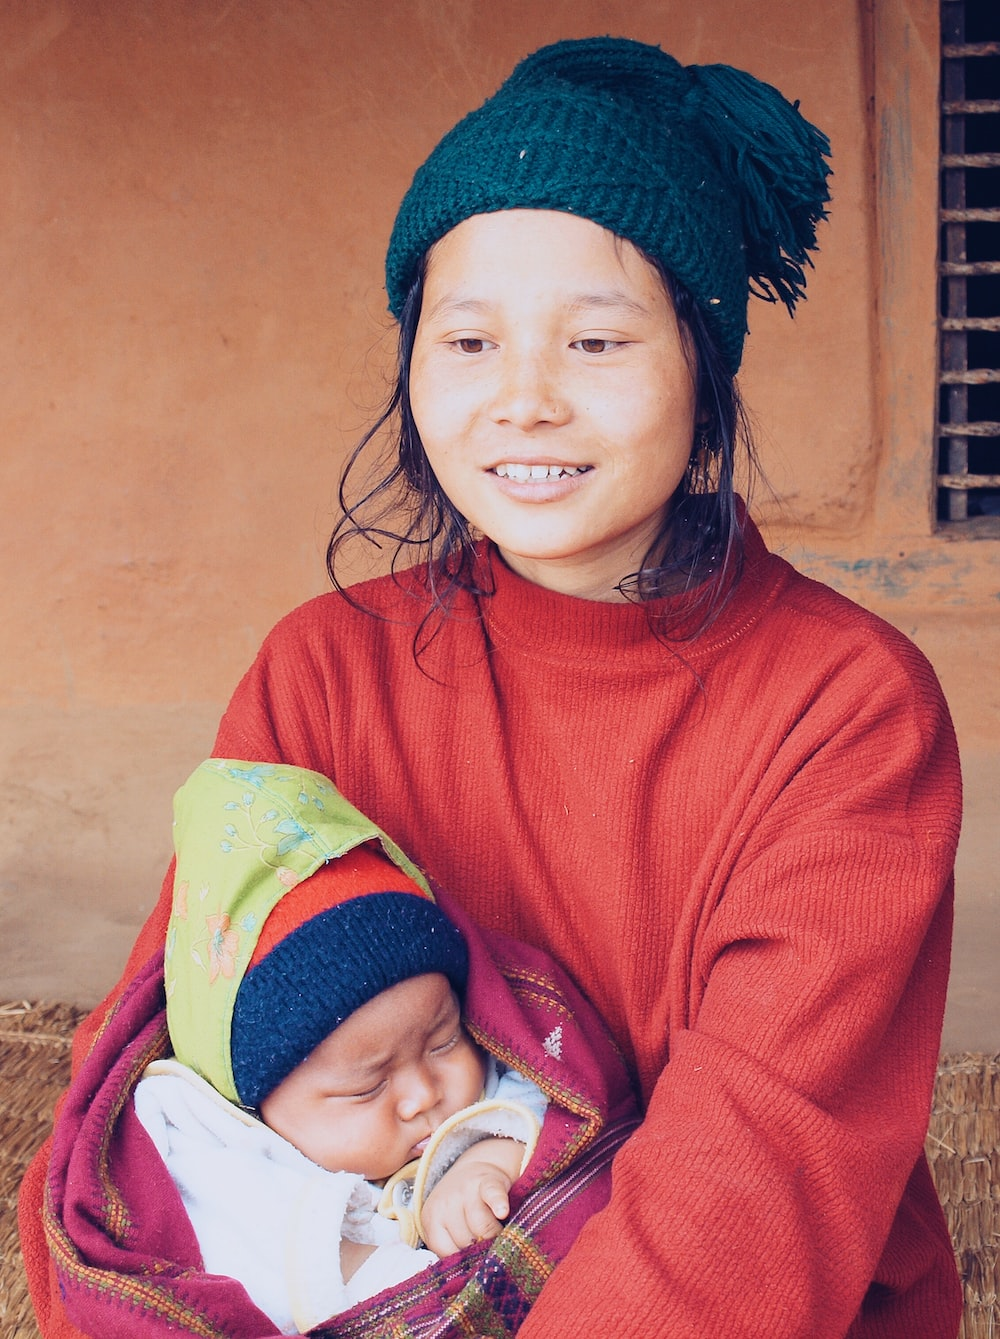 woman carrying a baby